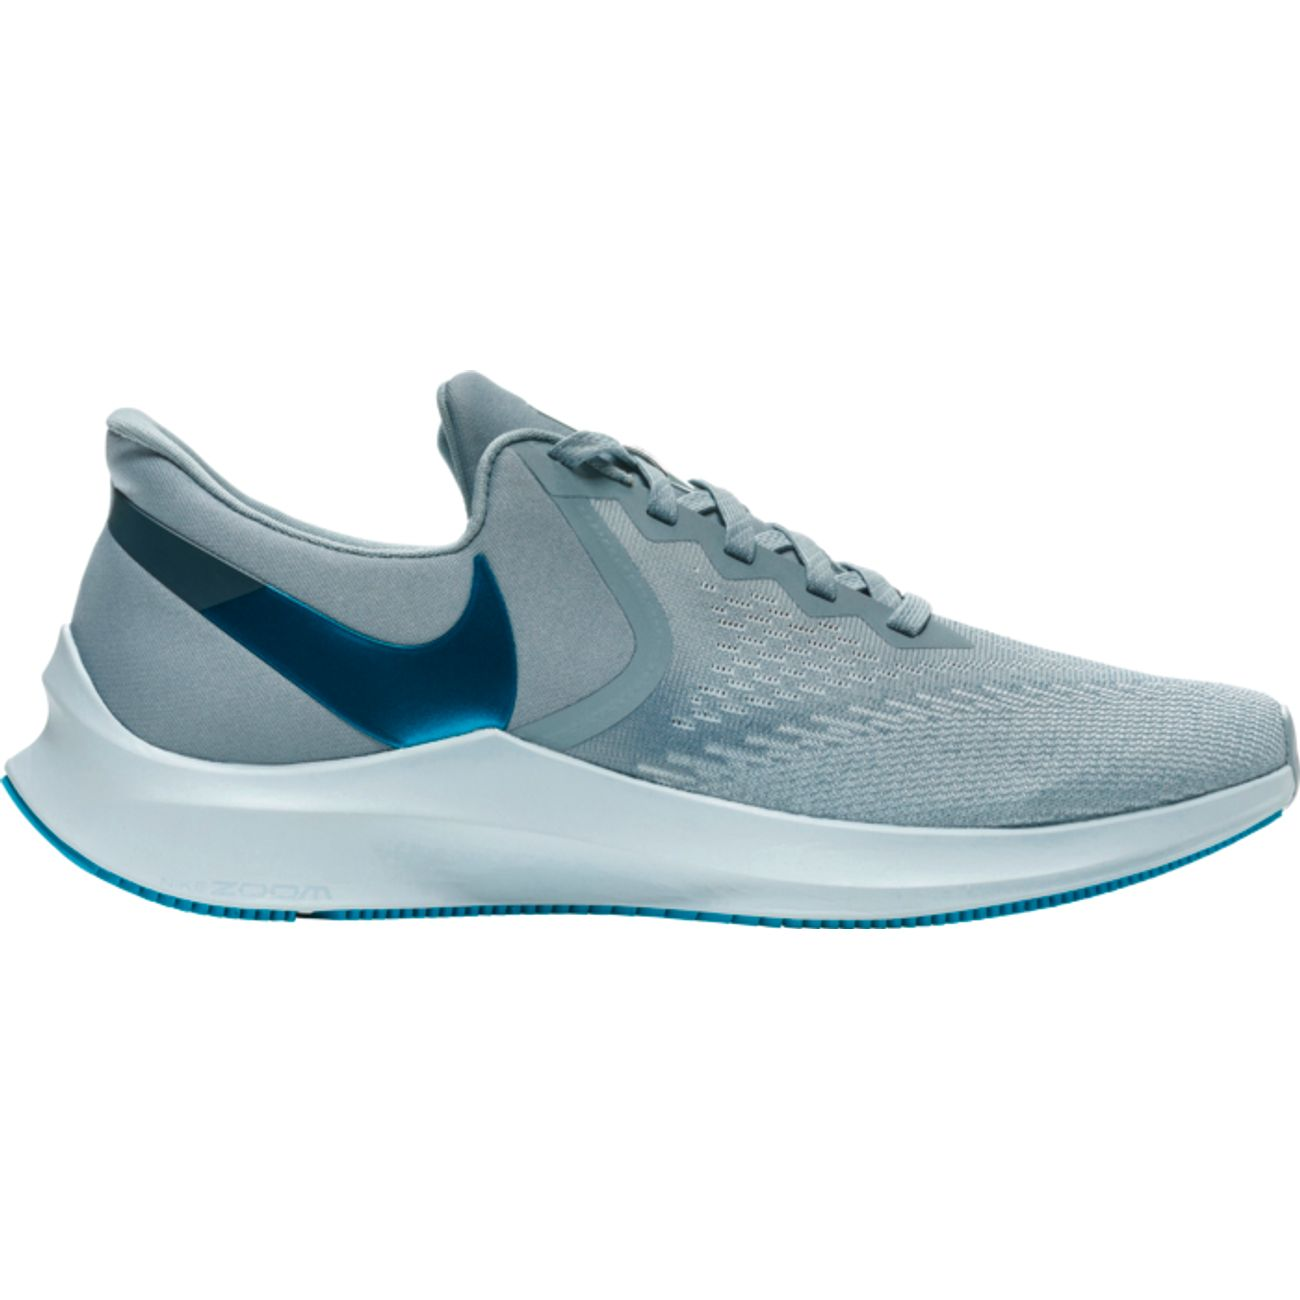 CHAUSSURES BASSES running homme NIKE ZOOM WINFLO